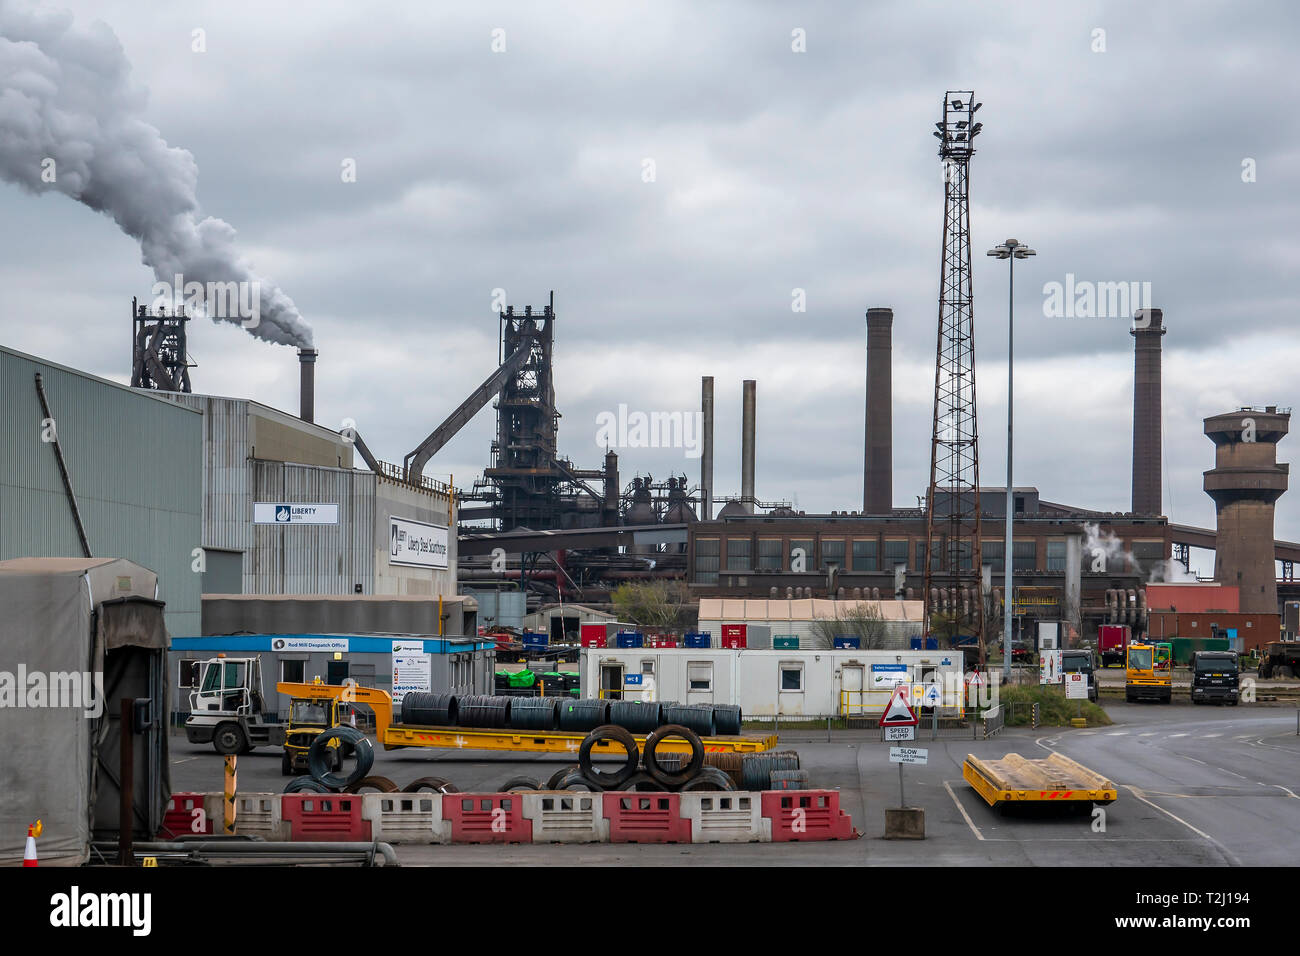 Steelworks,Scunthorpe,England (Taken from a public highway) Stock Photo